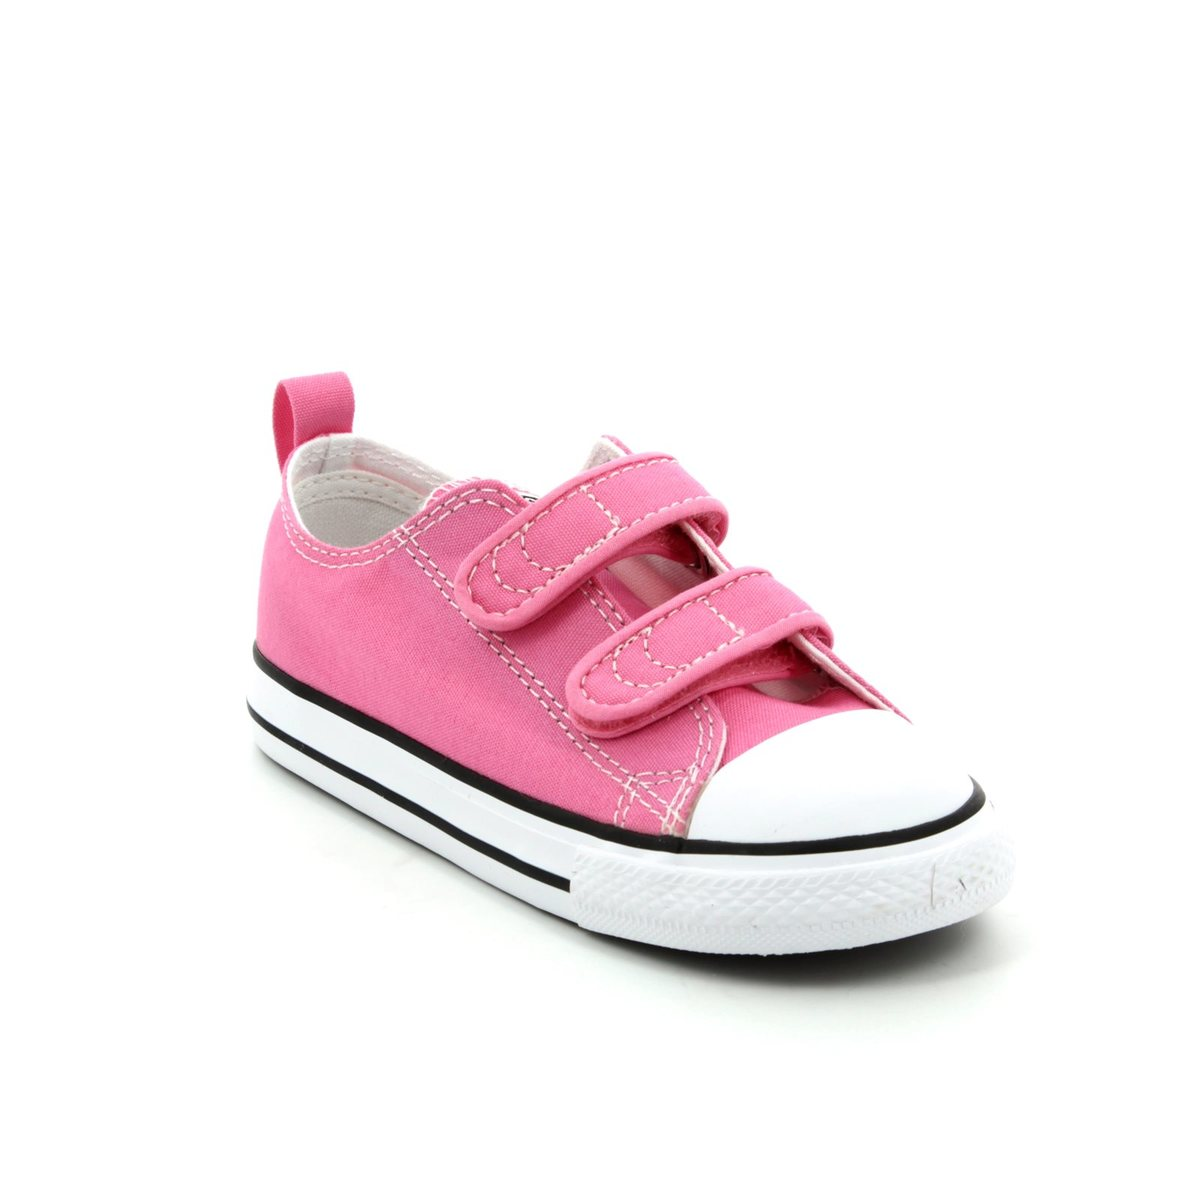 924ce418652c Converse Trainers - Pink - 709447F 650 CHUCK TAYLOR ALLSTAR 2V Velcro